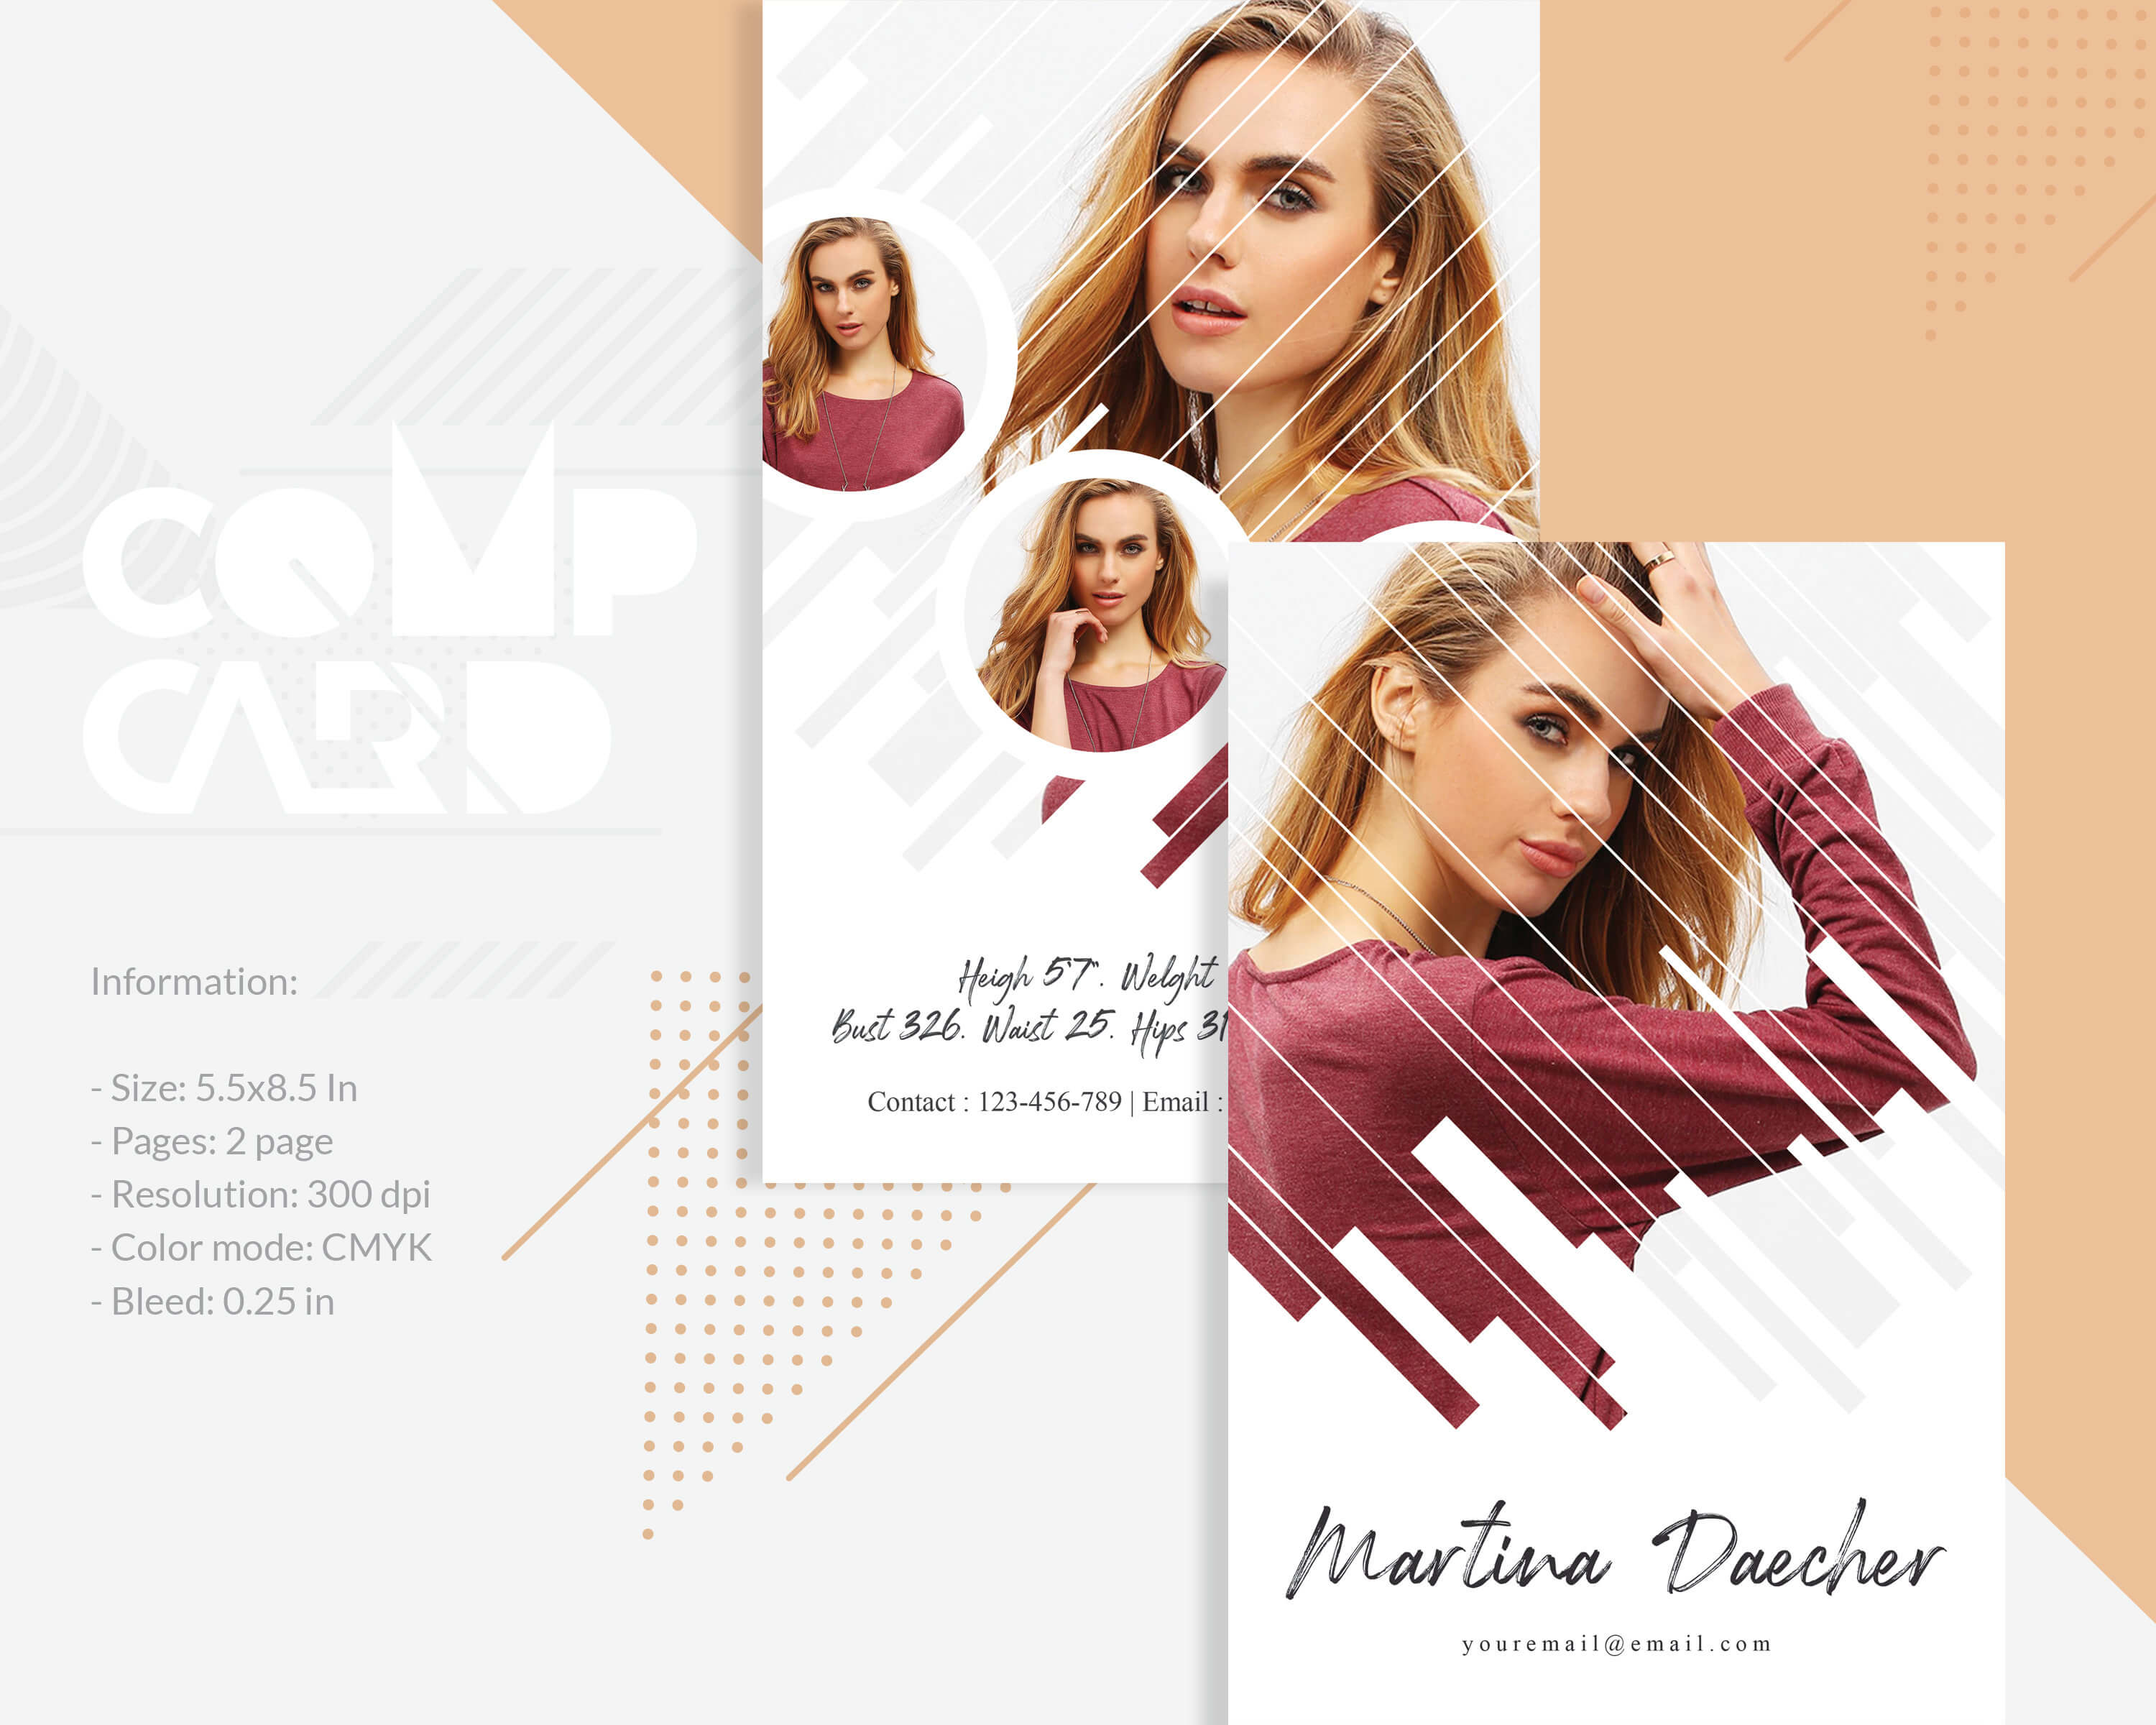 Model Comp Card Template | Modeling Comp Card | Fashion Card | Ms Word,  Photoshop And Elements Template | Instant Download in Comp Card Template Download